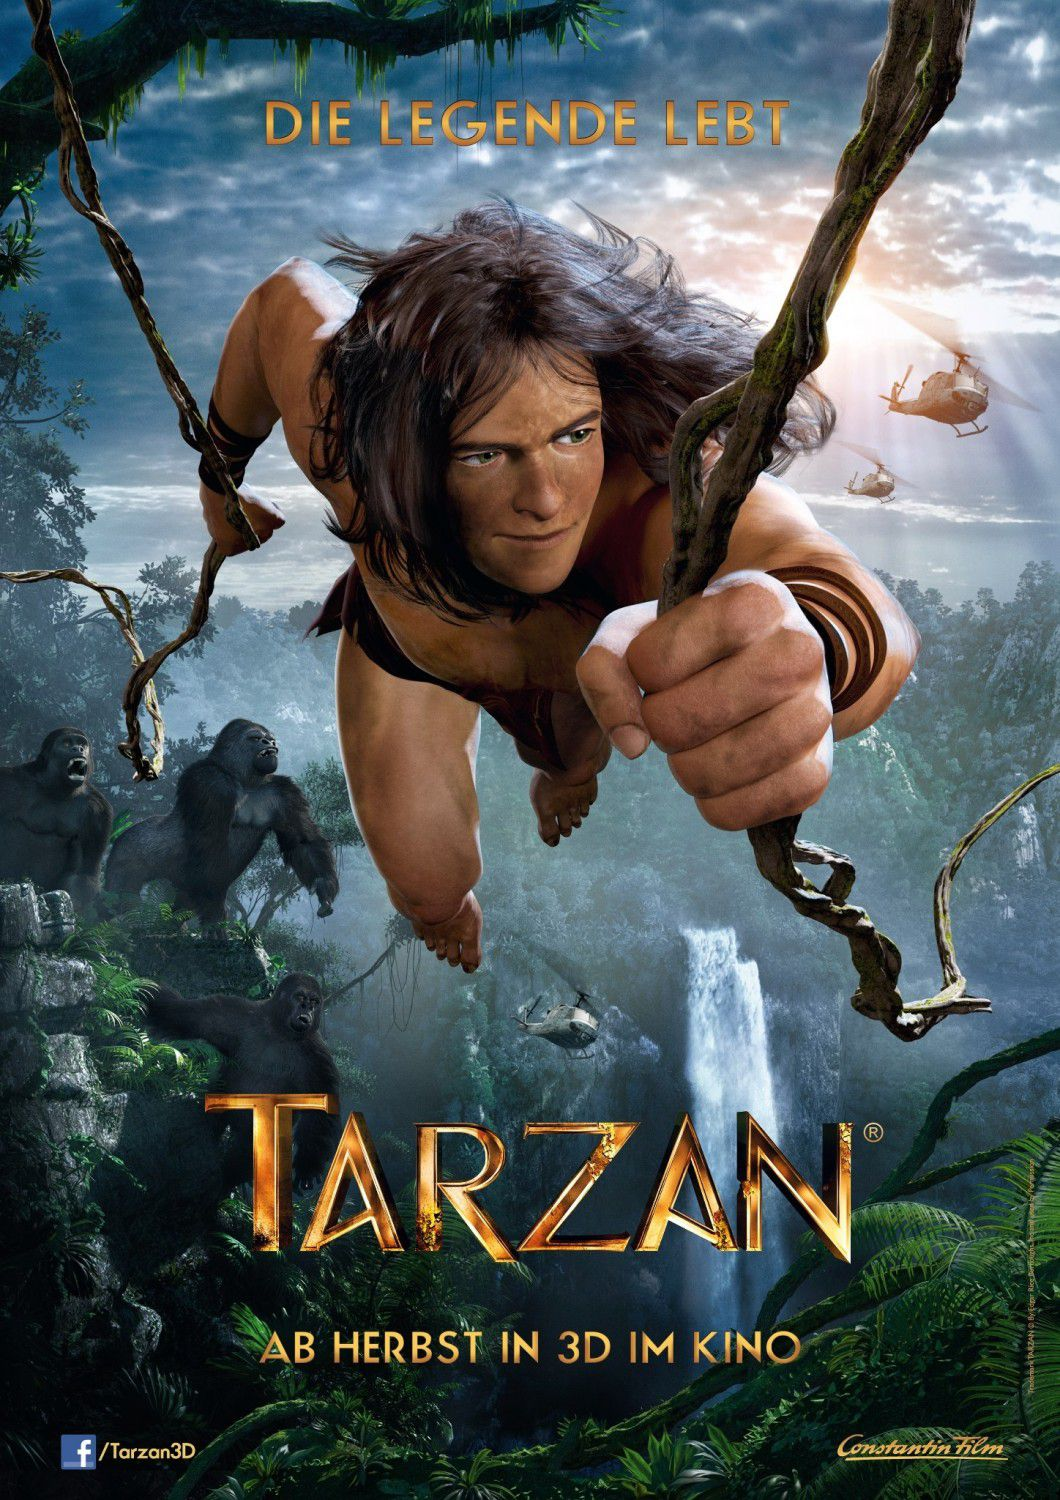 Tarzan (2013) animated story